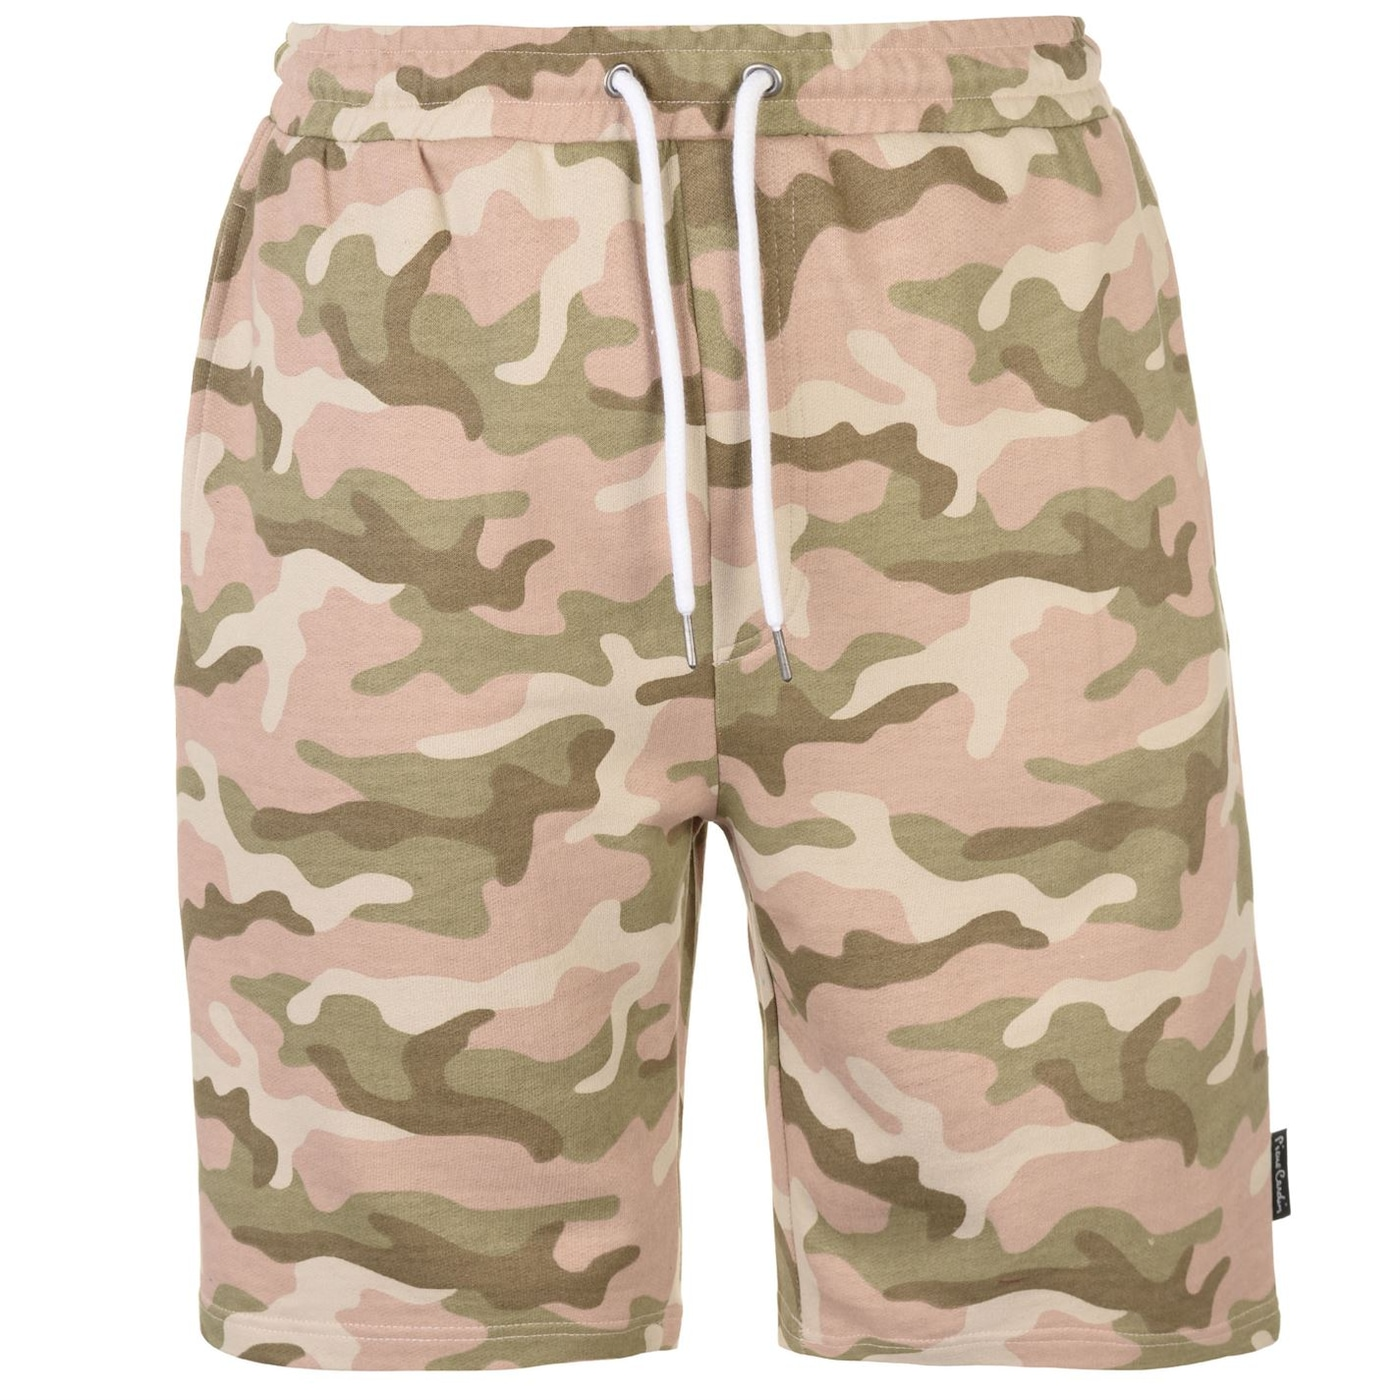 Pierre Cardin Camouflage Shorts Mens